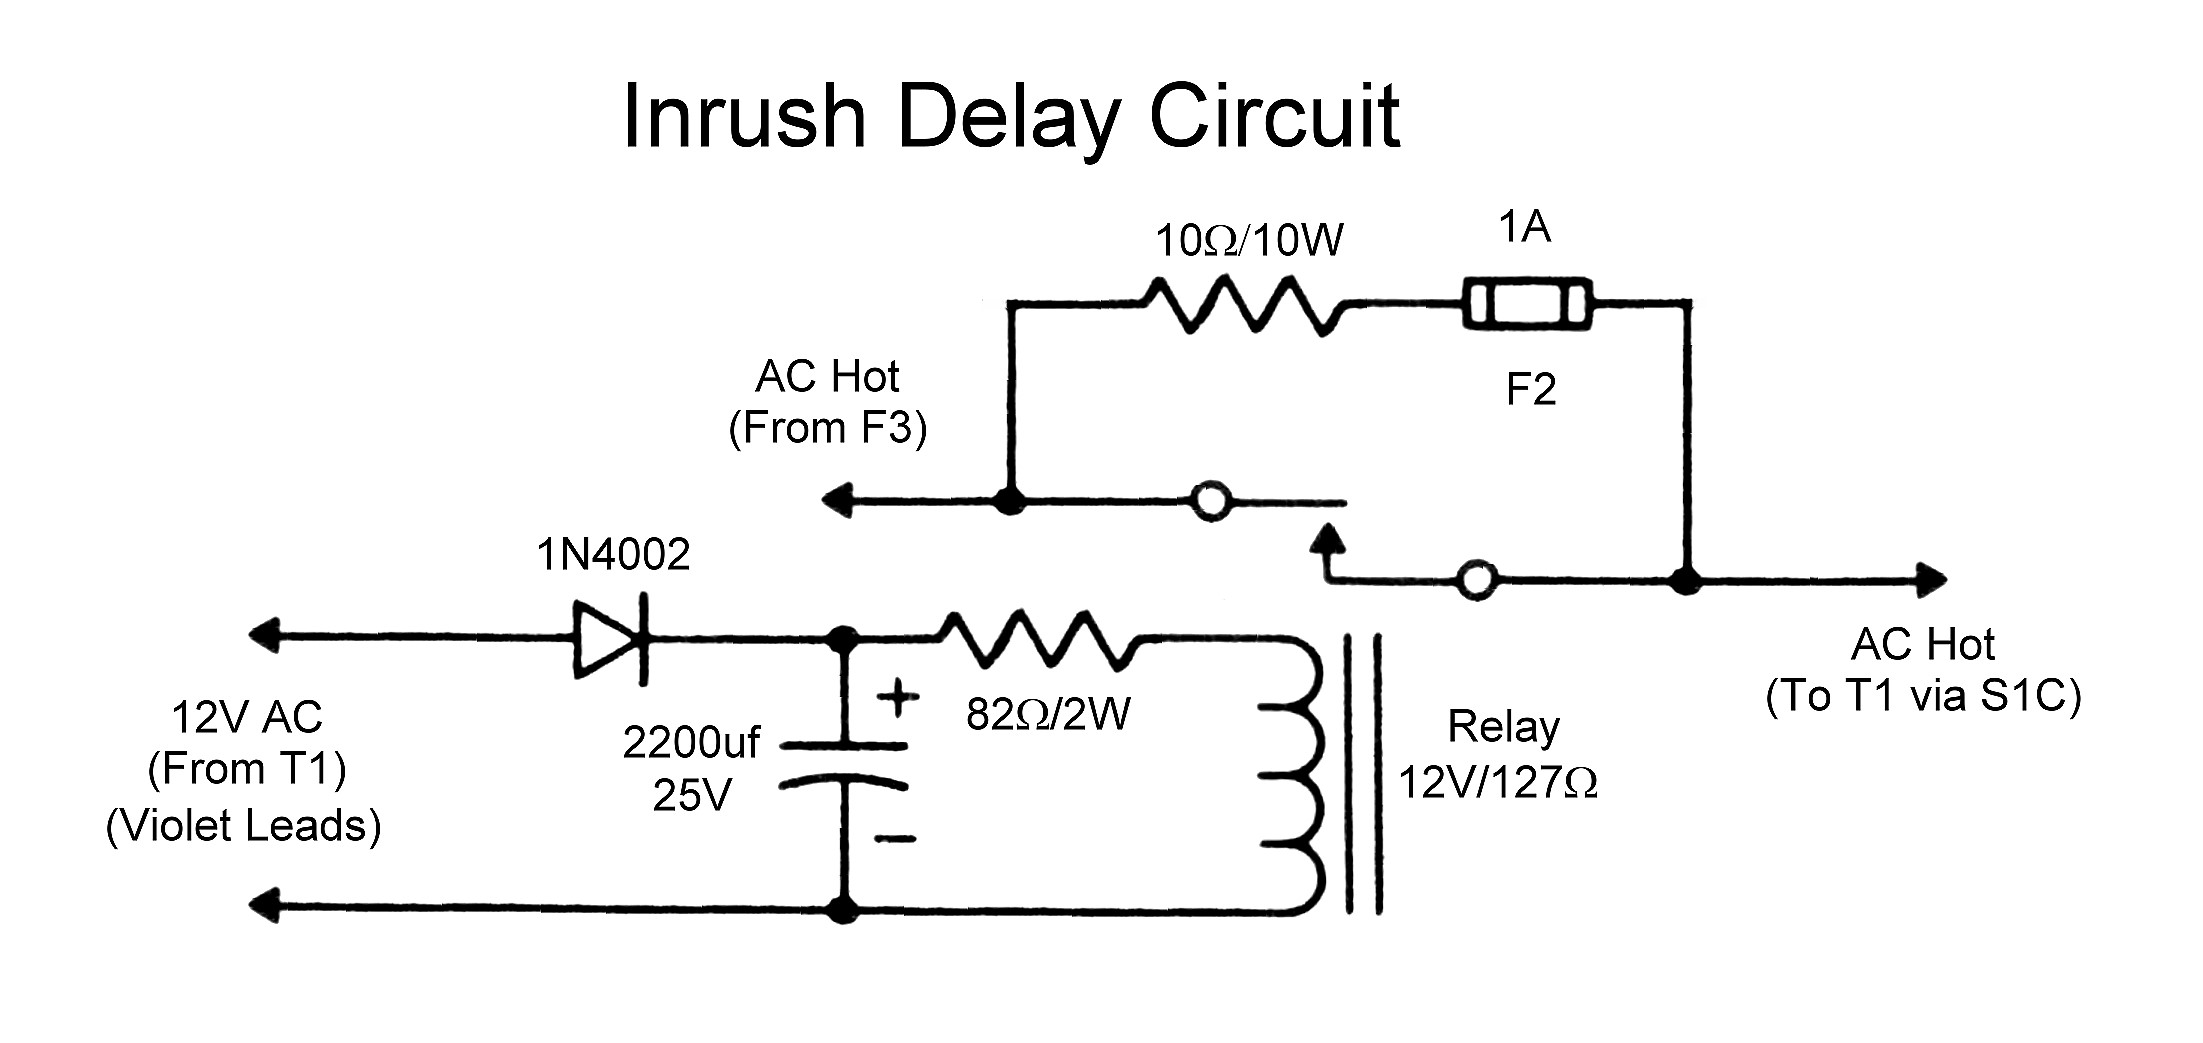 click here for a high resolution schematic, more suitable for printing   circuit description: